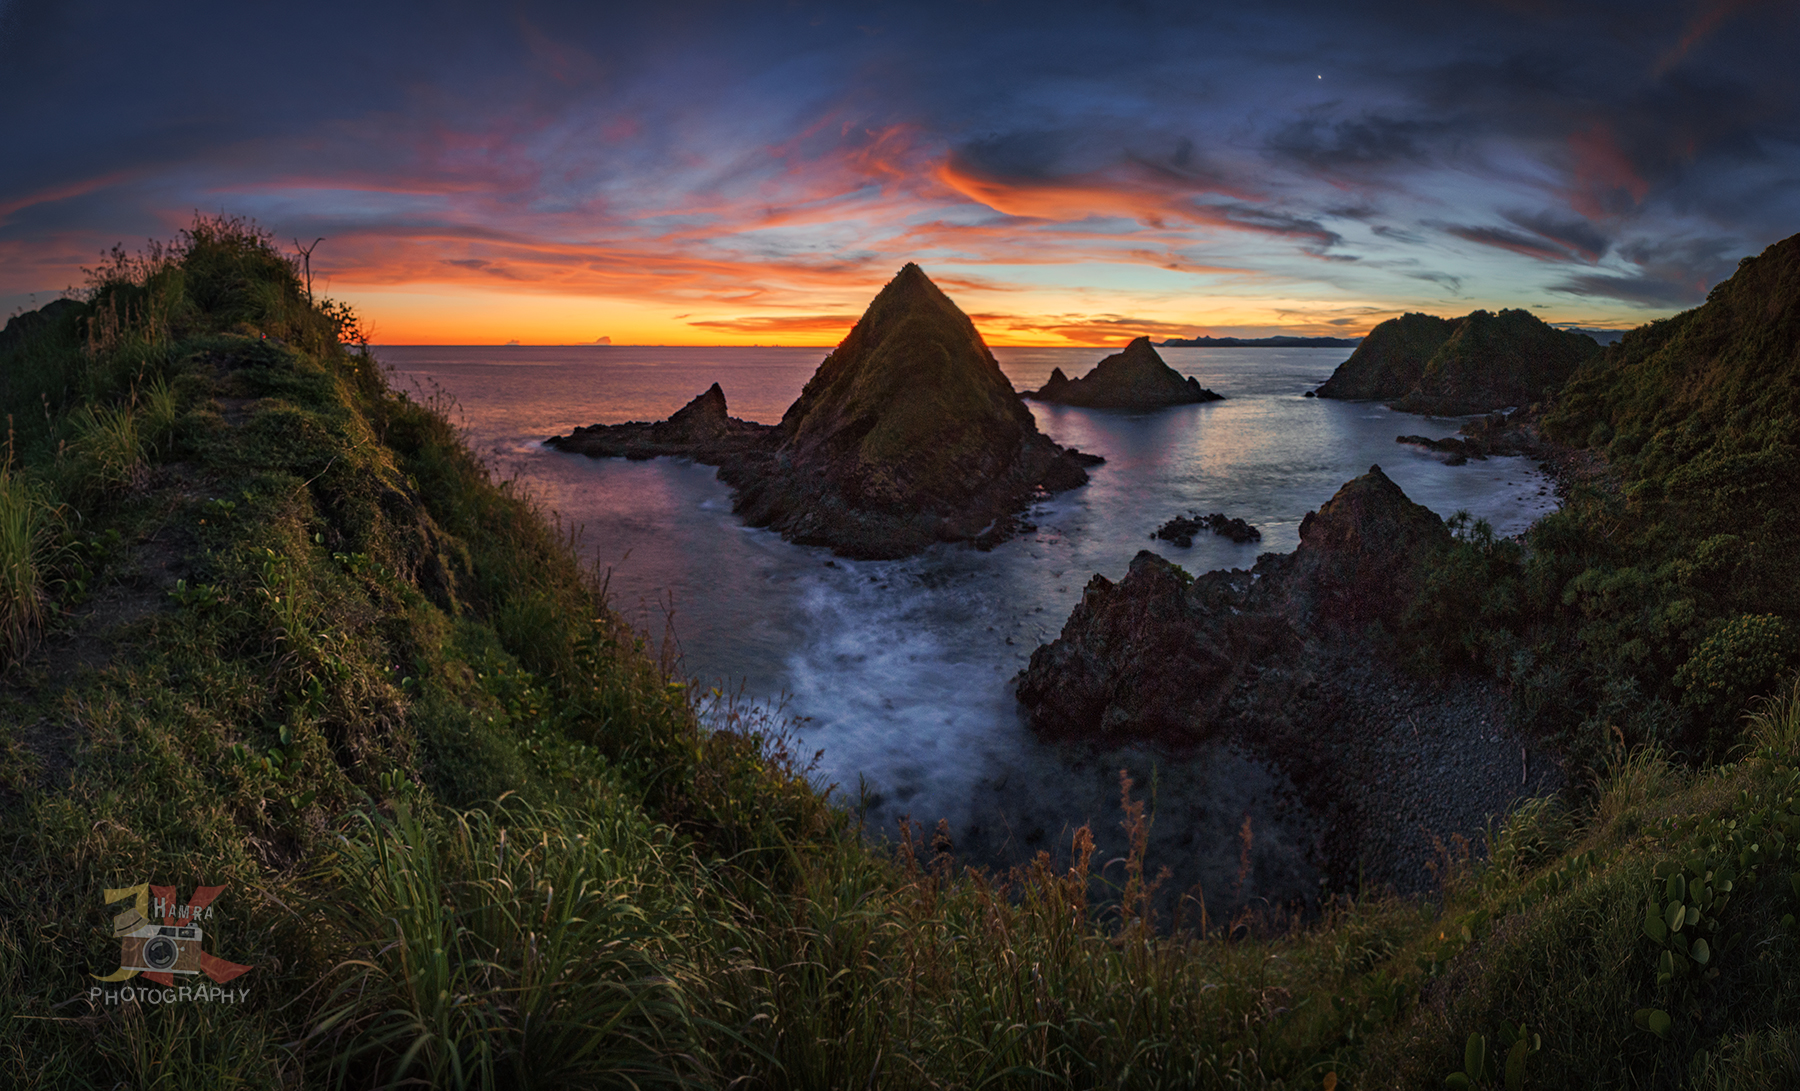 Zoni Hill at Telawas Beach, Indonesia